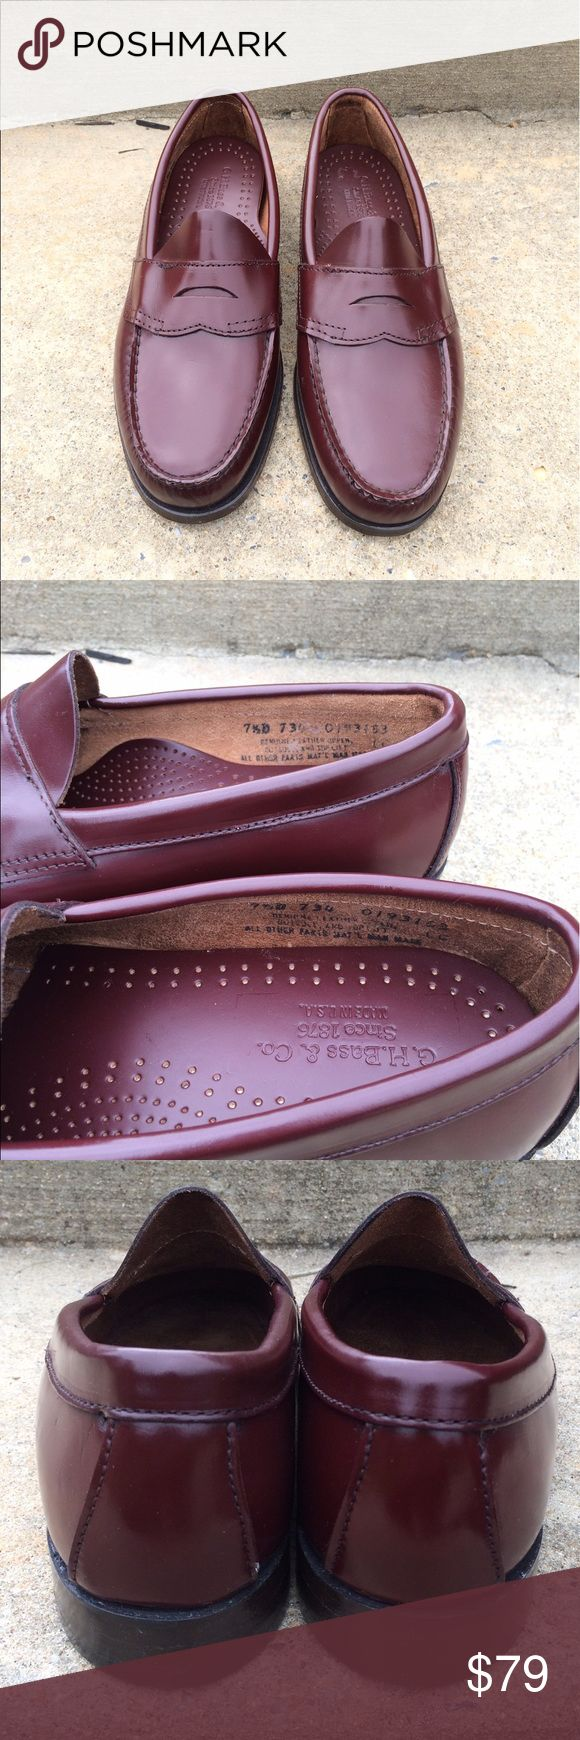 Burgundy Bradford Penny Loafer Men's NWOT Burgundy Bradford Penny Loafer Men's NWOT. 100% AUTHENTIC  BASS IS A LEADER IN GENUINE HAND SEWN MOCCASIN. HAS BEEN CRAFTING MOCCASINS WITH THE GOAL OF CRAFTING THE BEST SHOES IN THE WORLD. OUR BRADFORD PENNY LOAFER FEATURES A BEEFROLL DESIGN, IS HAND-STITCHED AND IS UNIQUELY COMFORTABLE, DURABLE, AND FLEXIBLE. IT IS THE PERFECT SHOE FOR THE OFFICE OR ON A DATE AROUND TOWN.   SIZE: 7.5 BRAND NEW (NWOT) MISSING BOX.  BOTH SHOES HAVE A LITTLE HOLE IN…